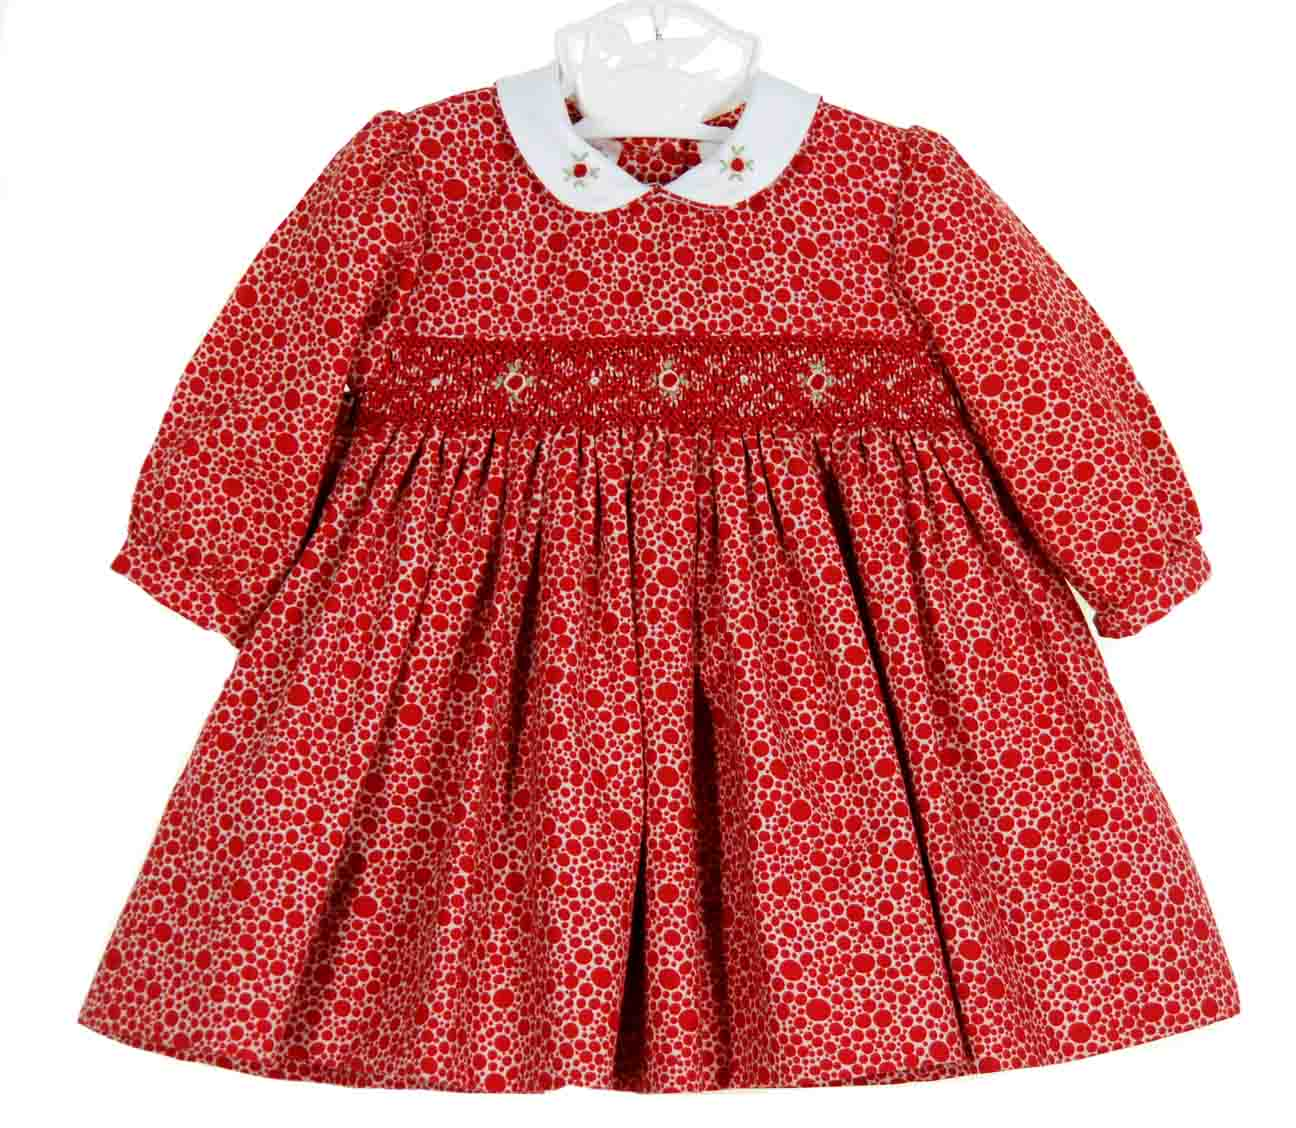 a992efa76216 Sarah Louise red dotted twill smocked dress